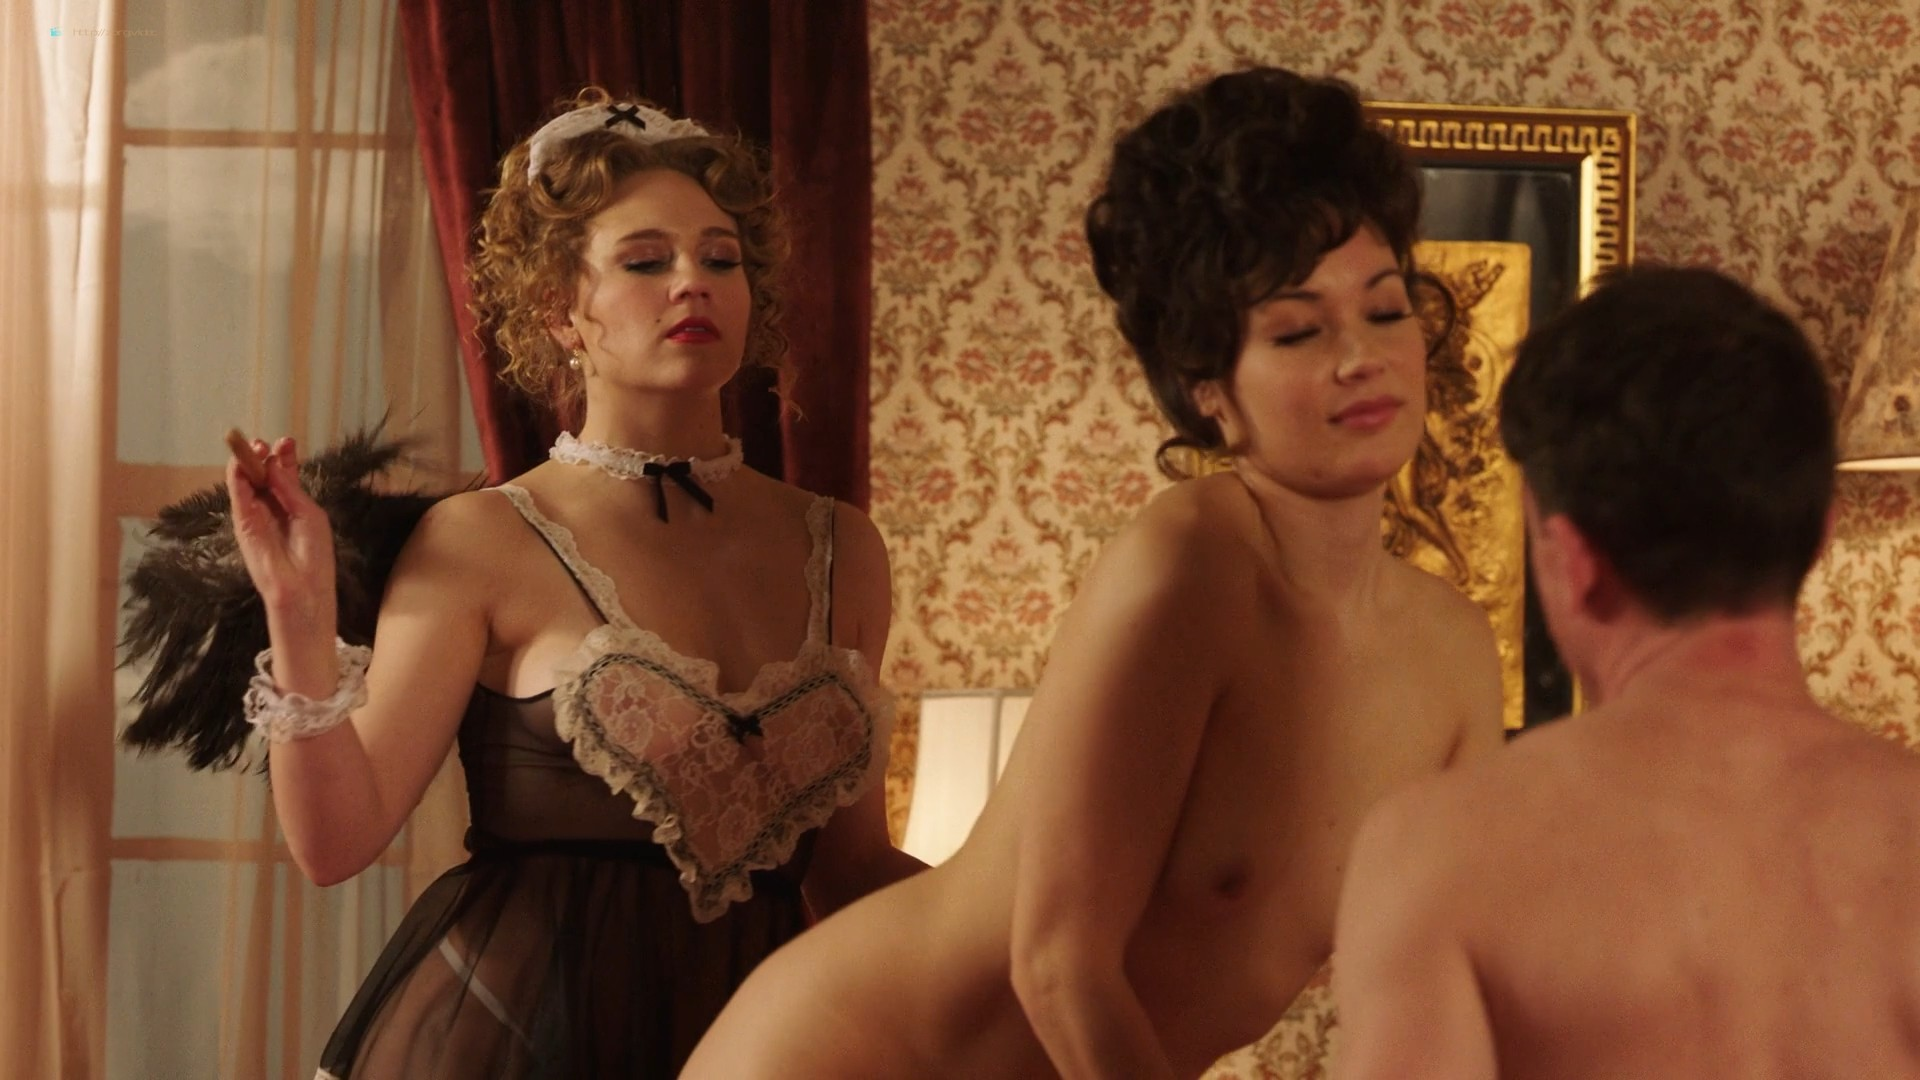 Emily Meade nude sex Krissy Lynn and others nude sex too - The Deuce (2019) s3e2 1080p Web (6)